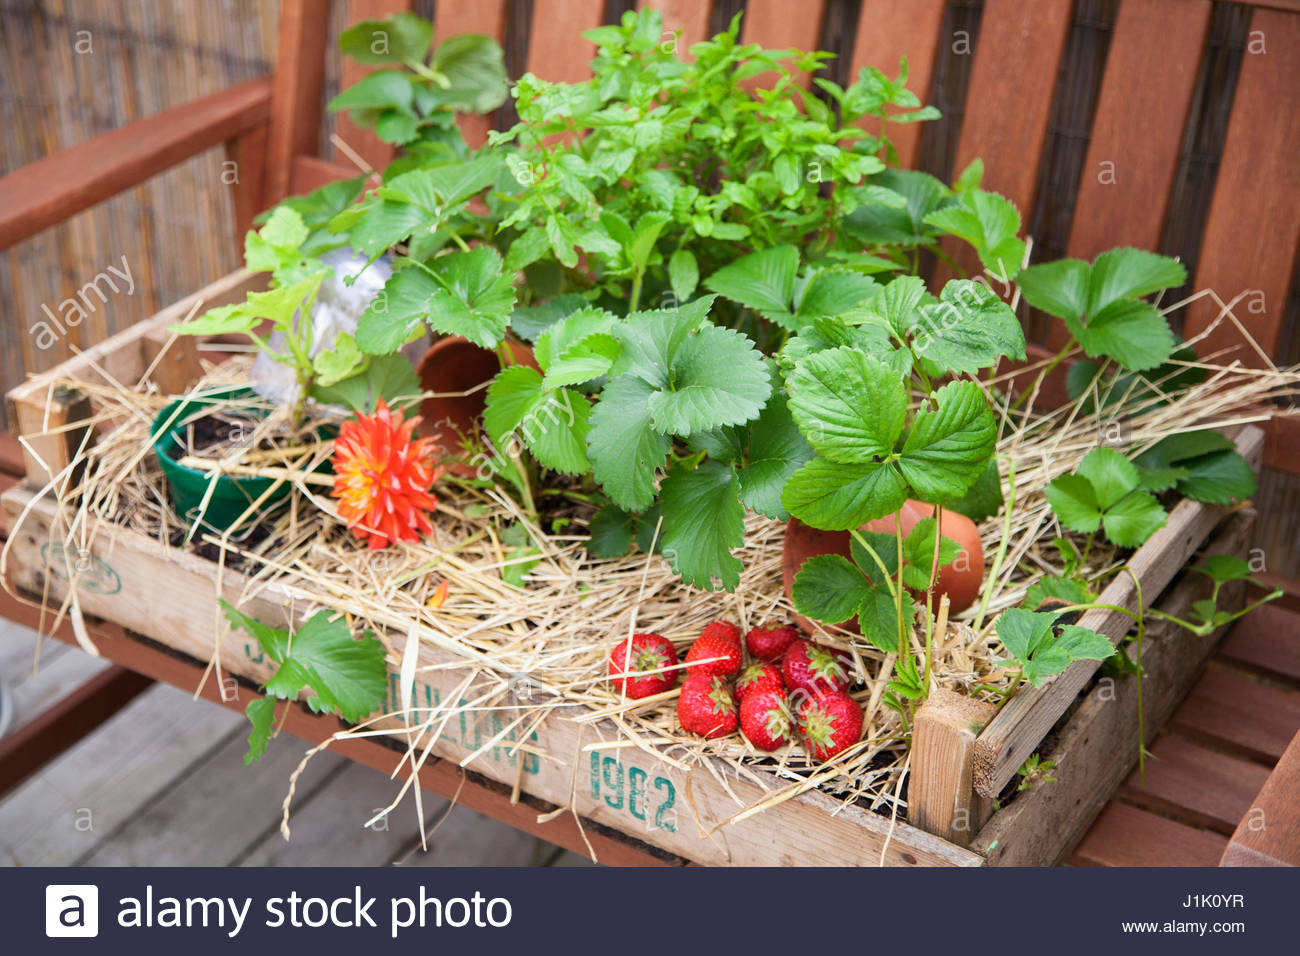 MINI ALLOTMENT CRATE WITH STRAWBERRIES MINT AND CUCUMBER - Stock Image